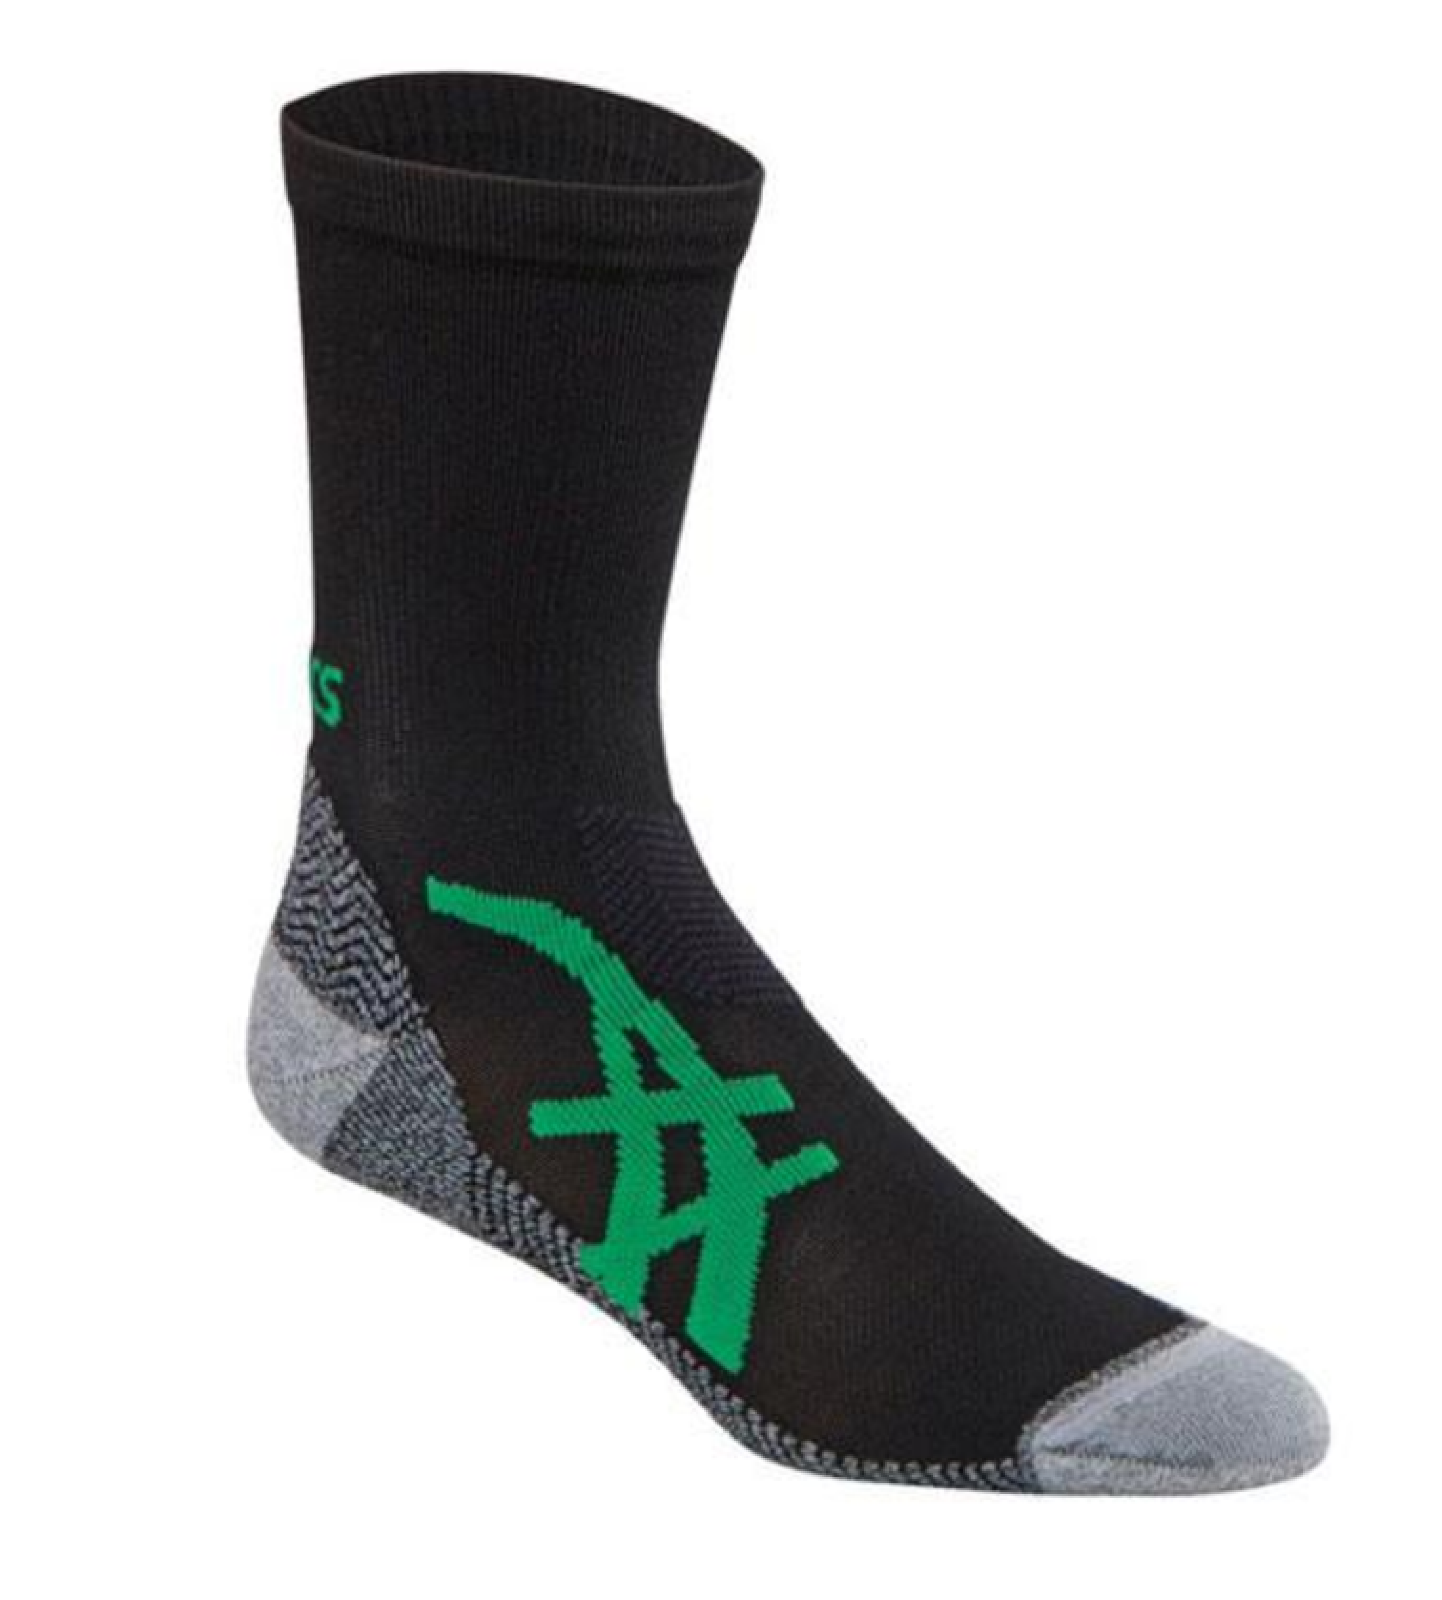 Asics FujiTrail Mini Crew Cut Socks Black L Large Size 9.5-11.5 Men & 10+ Women